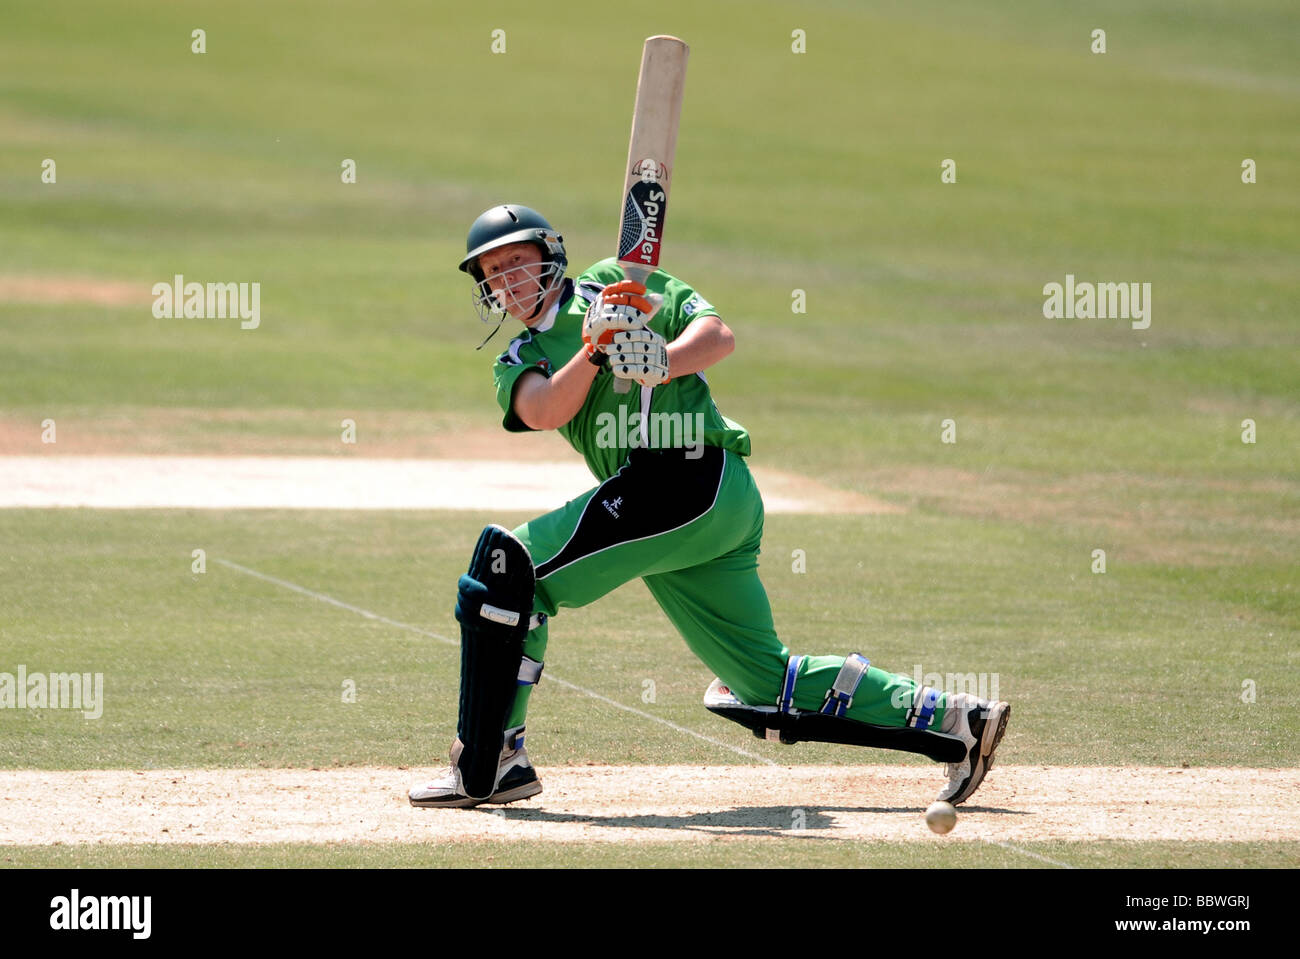 KEVIN O'BRIEN IRELAND V WEST INDIES THE OVAL LONDON ENGLAND 02 June 2009 - Stock Image